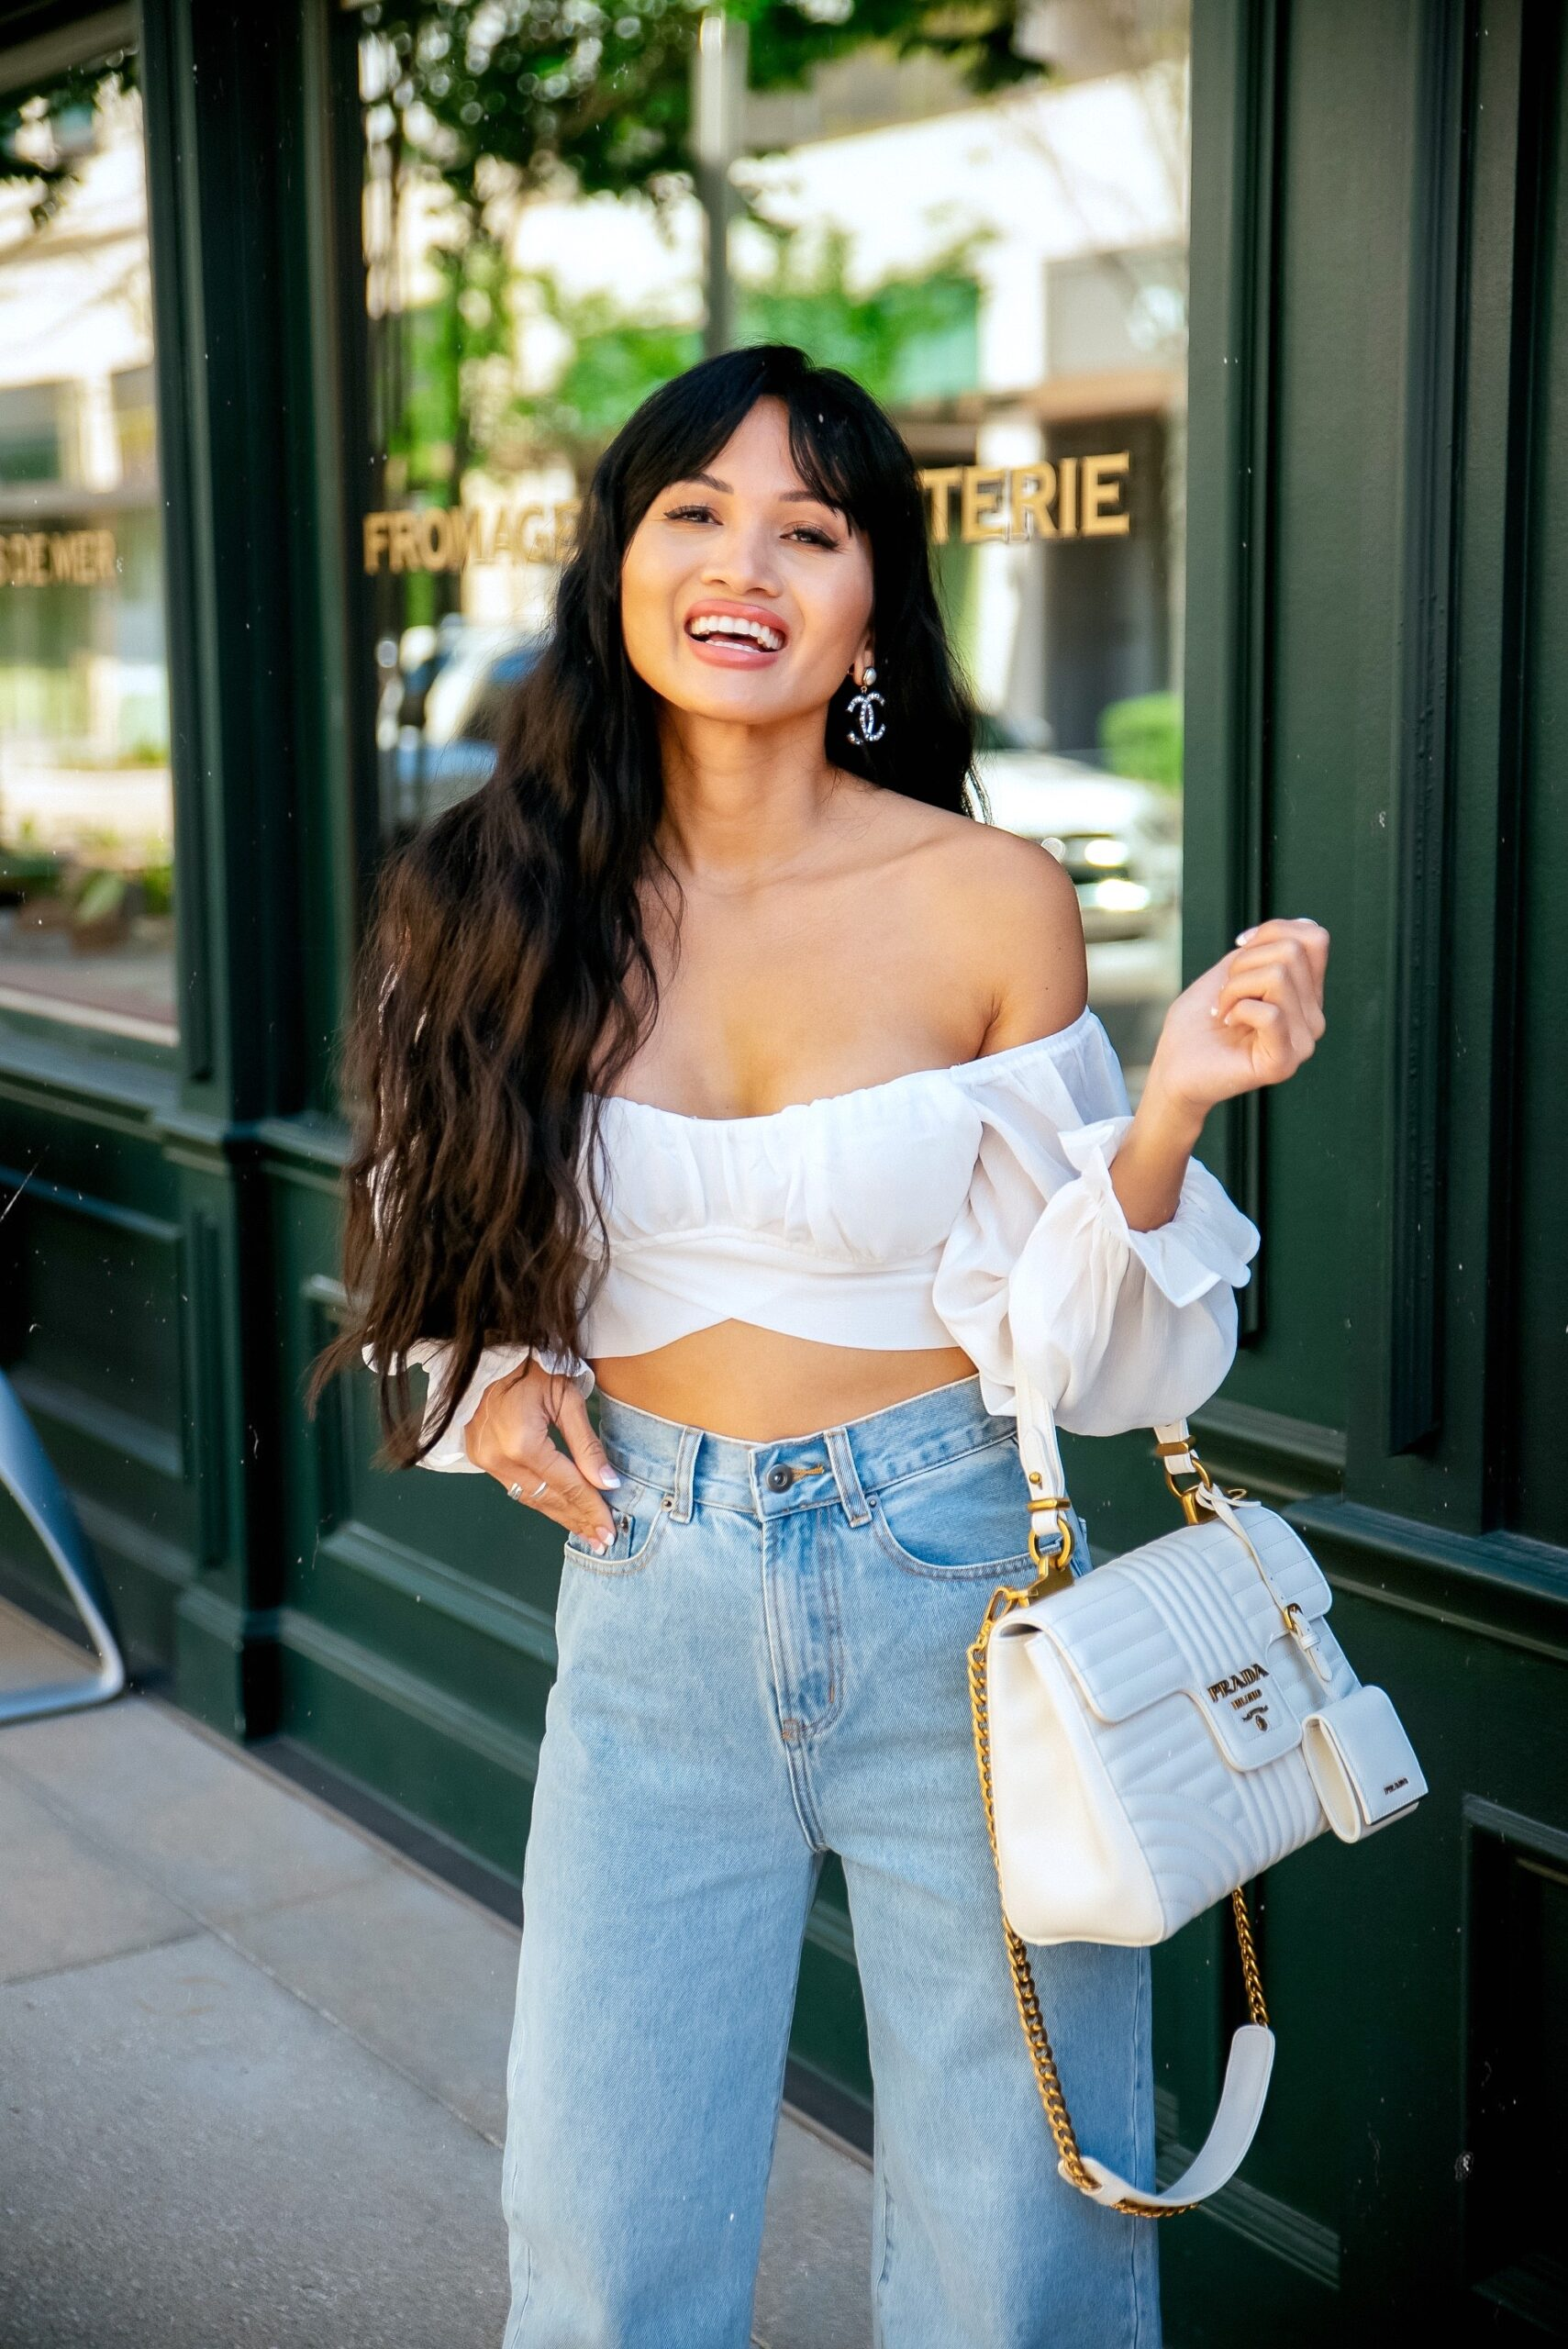 SUMMER CROP TOP, SUMMER STYLE, HIGH WAISTED JEANS, SUMMER JEANS, CHANEL